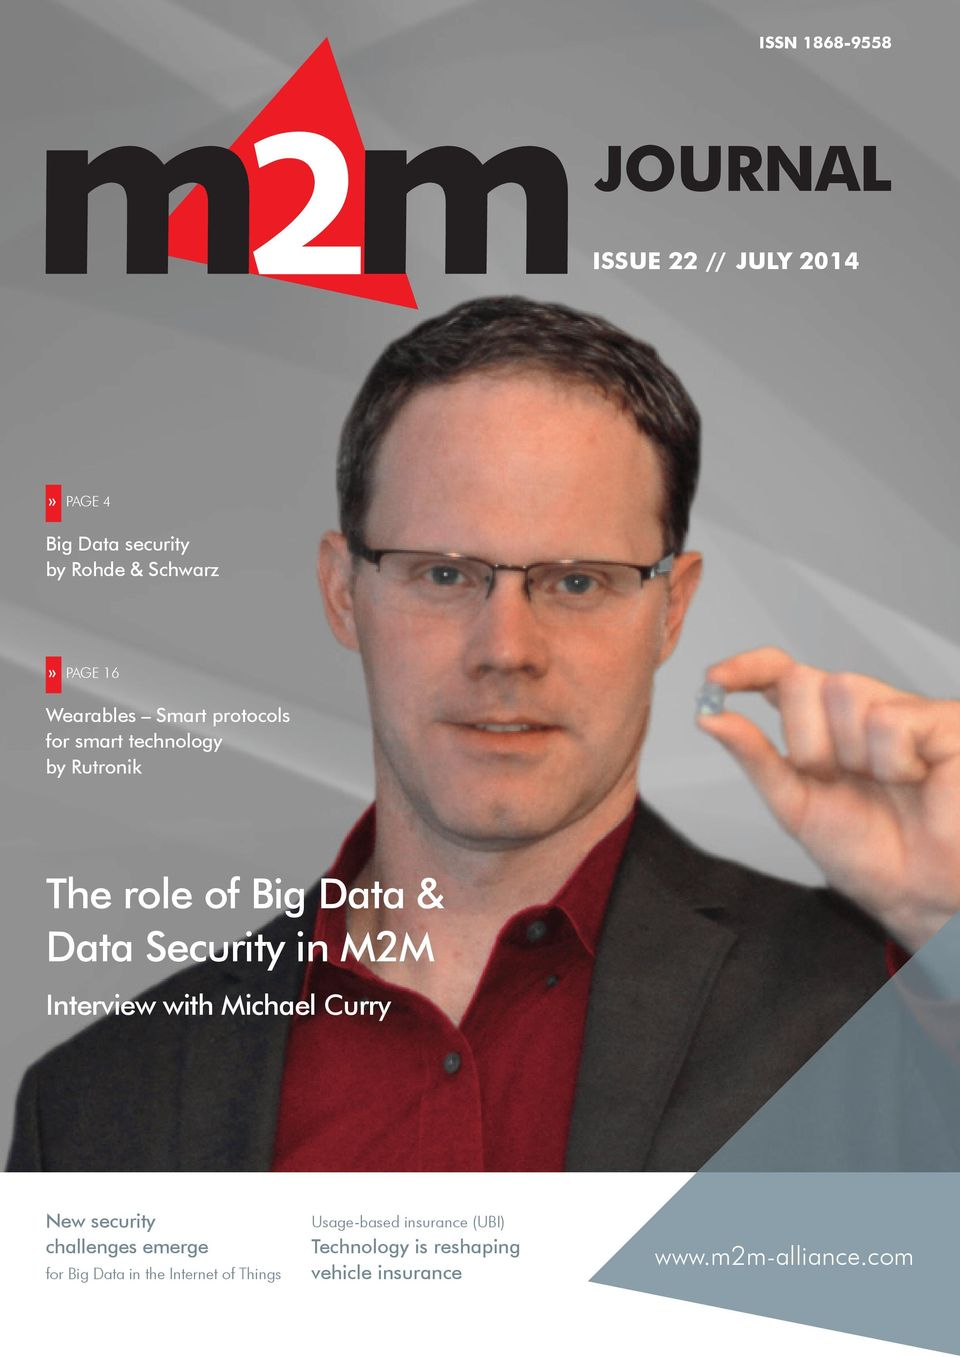 Security in M2M Interview with Michael Curry New security challenges emerge for Big Data in the